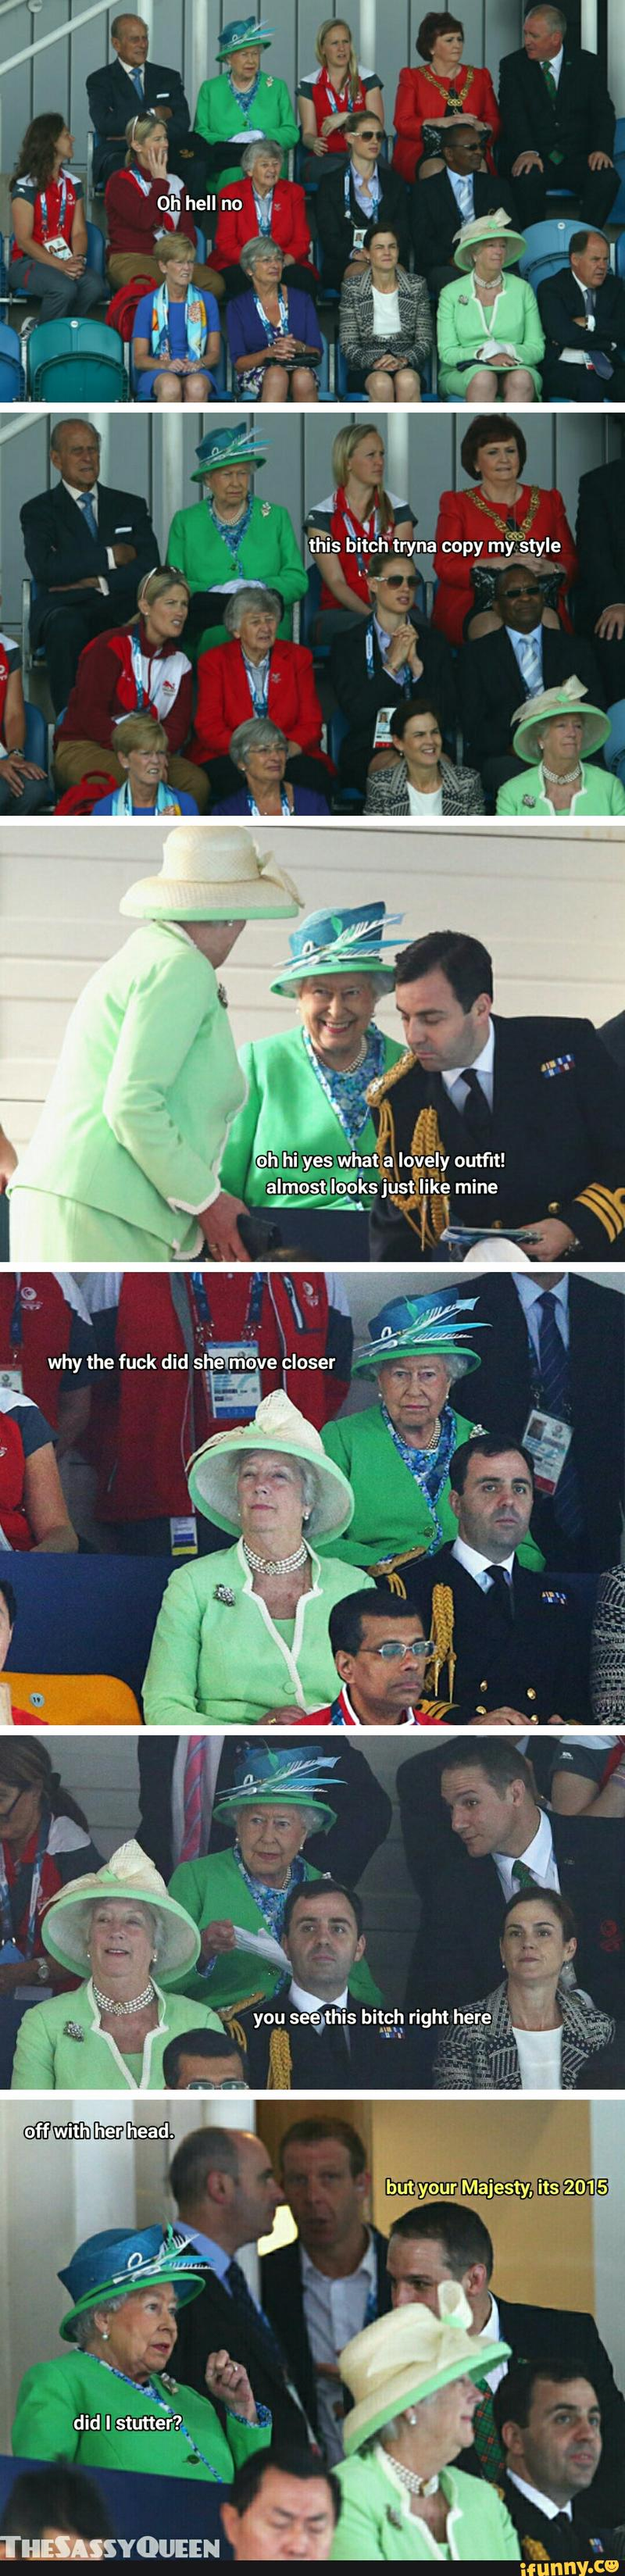 Funny Queen Elizabeth Off With Her Head! Meme Strip